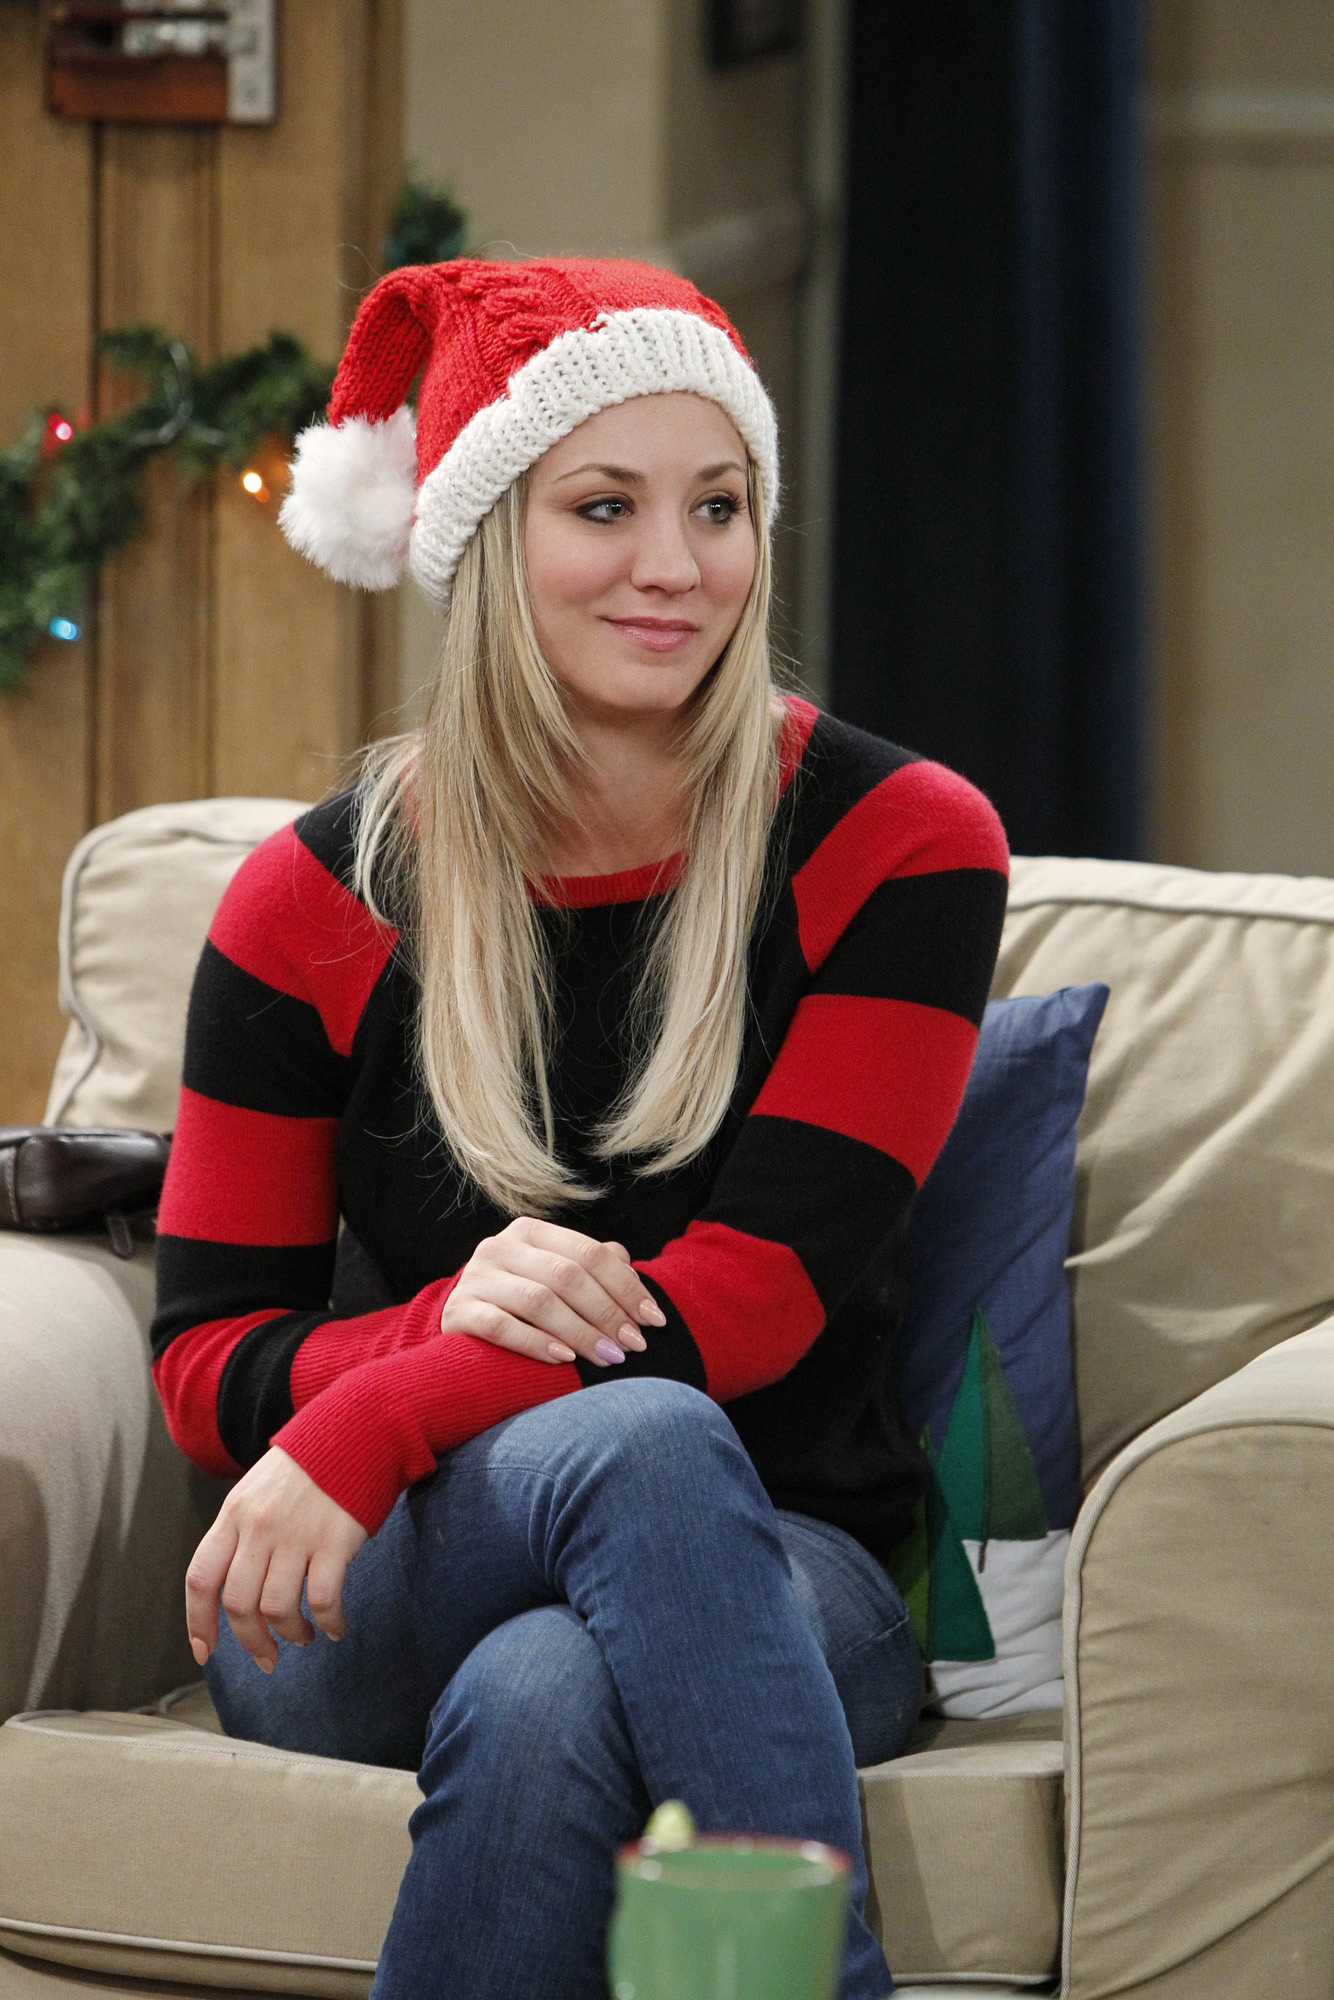 It's Kaley Cuoco—or Penny, from The Big Bang Theory!